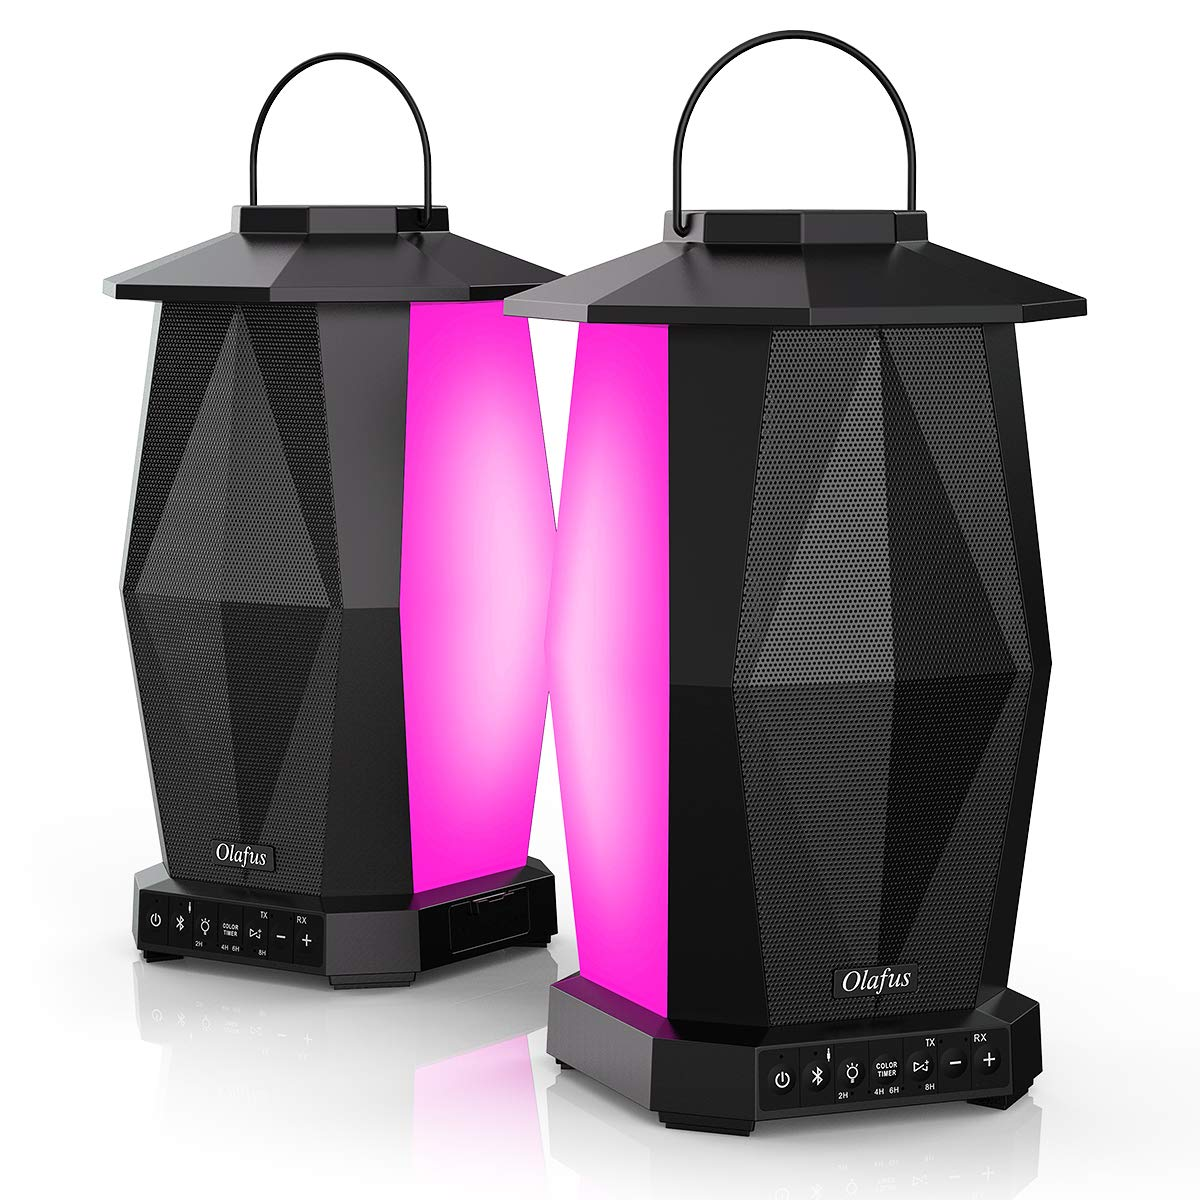 Olafus Bluetooth Speaker 2 Pack, IPX5 Waterproof Outdoor Lantern Speaker with 8 LED Light Color, True Wireless Stereo Pairing Speakers, Loud for House Party, 100ft Bluetooth Range, 20H Playtime